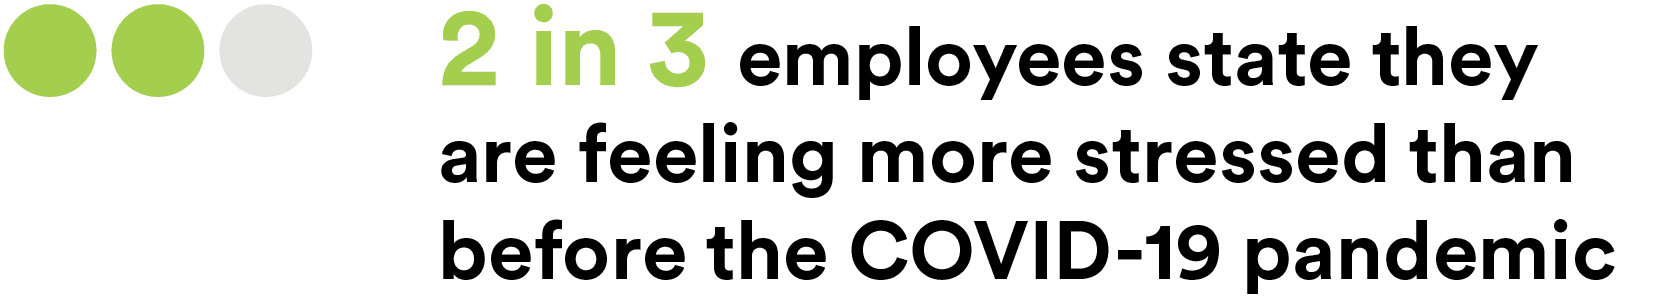 Employee Stat on covid-19